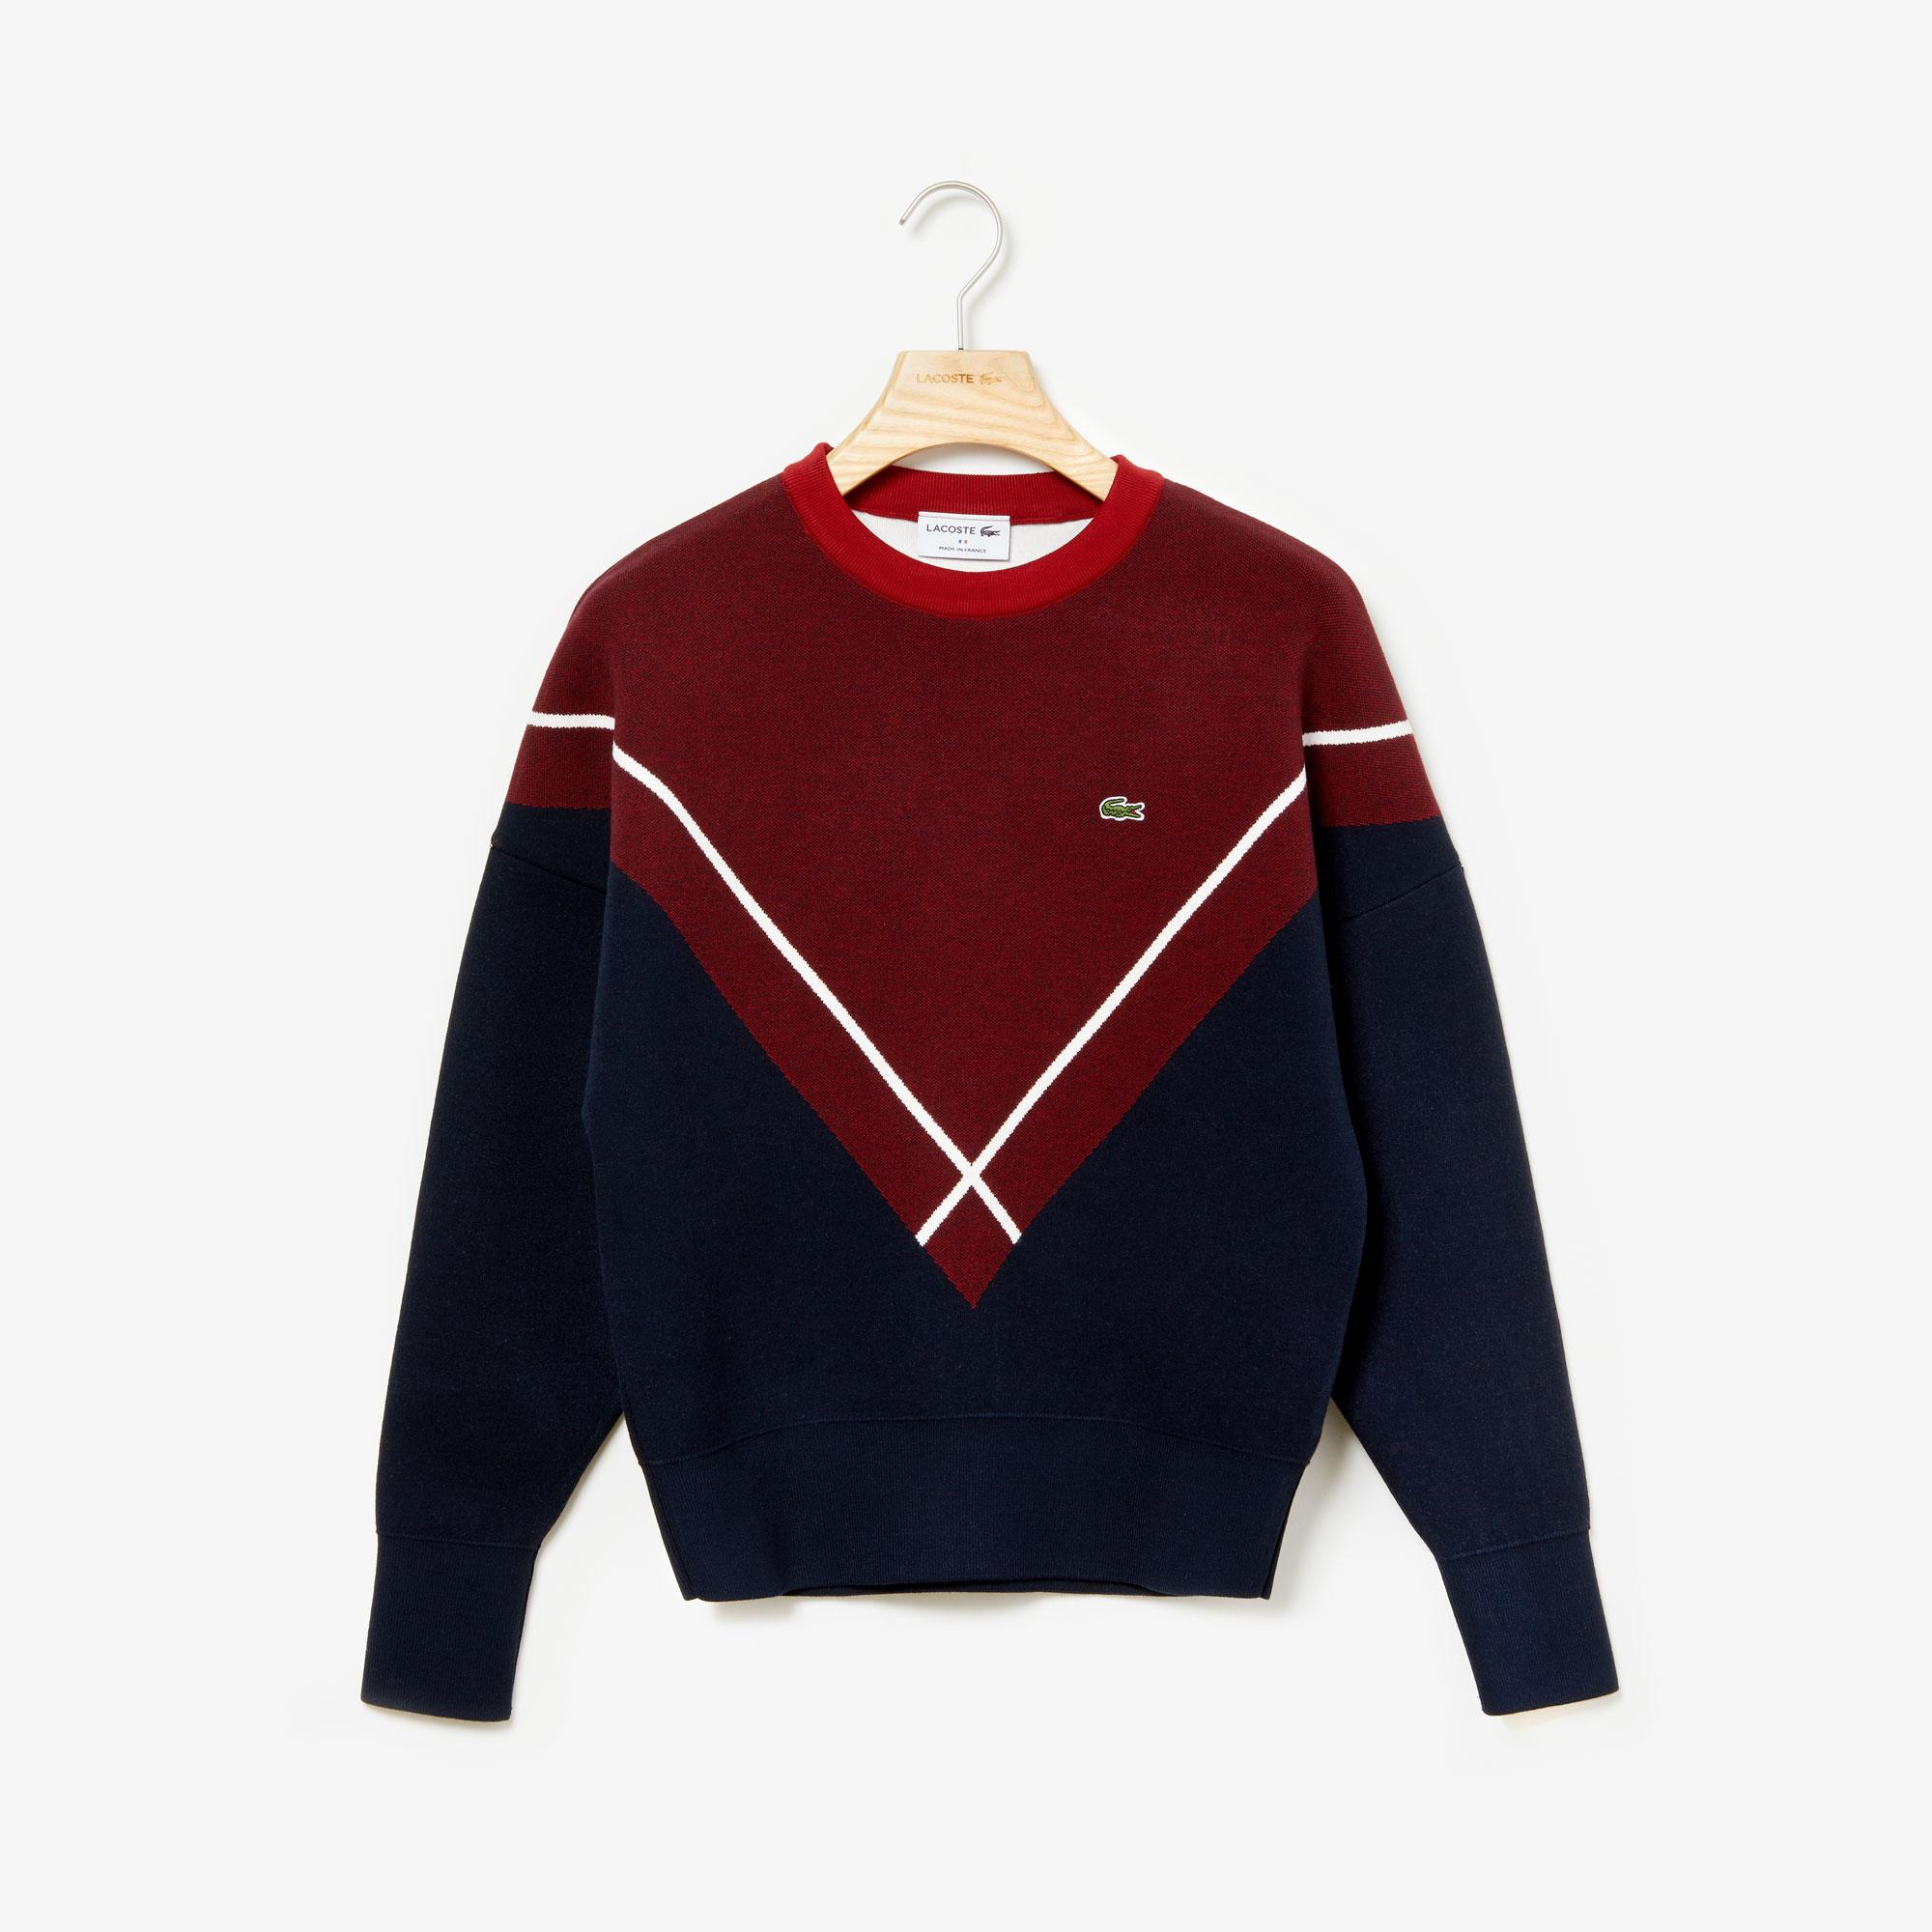 Lacoste Women's Made In France Crew Neck Jacquard Design Sweater